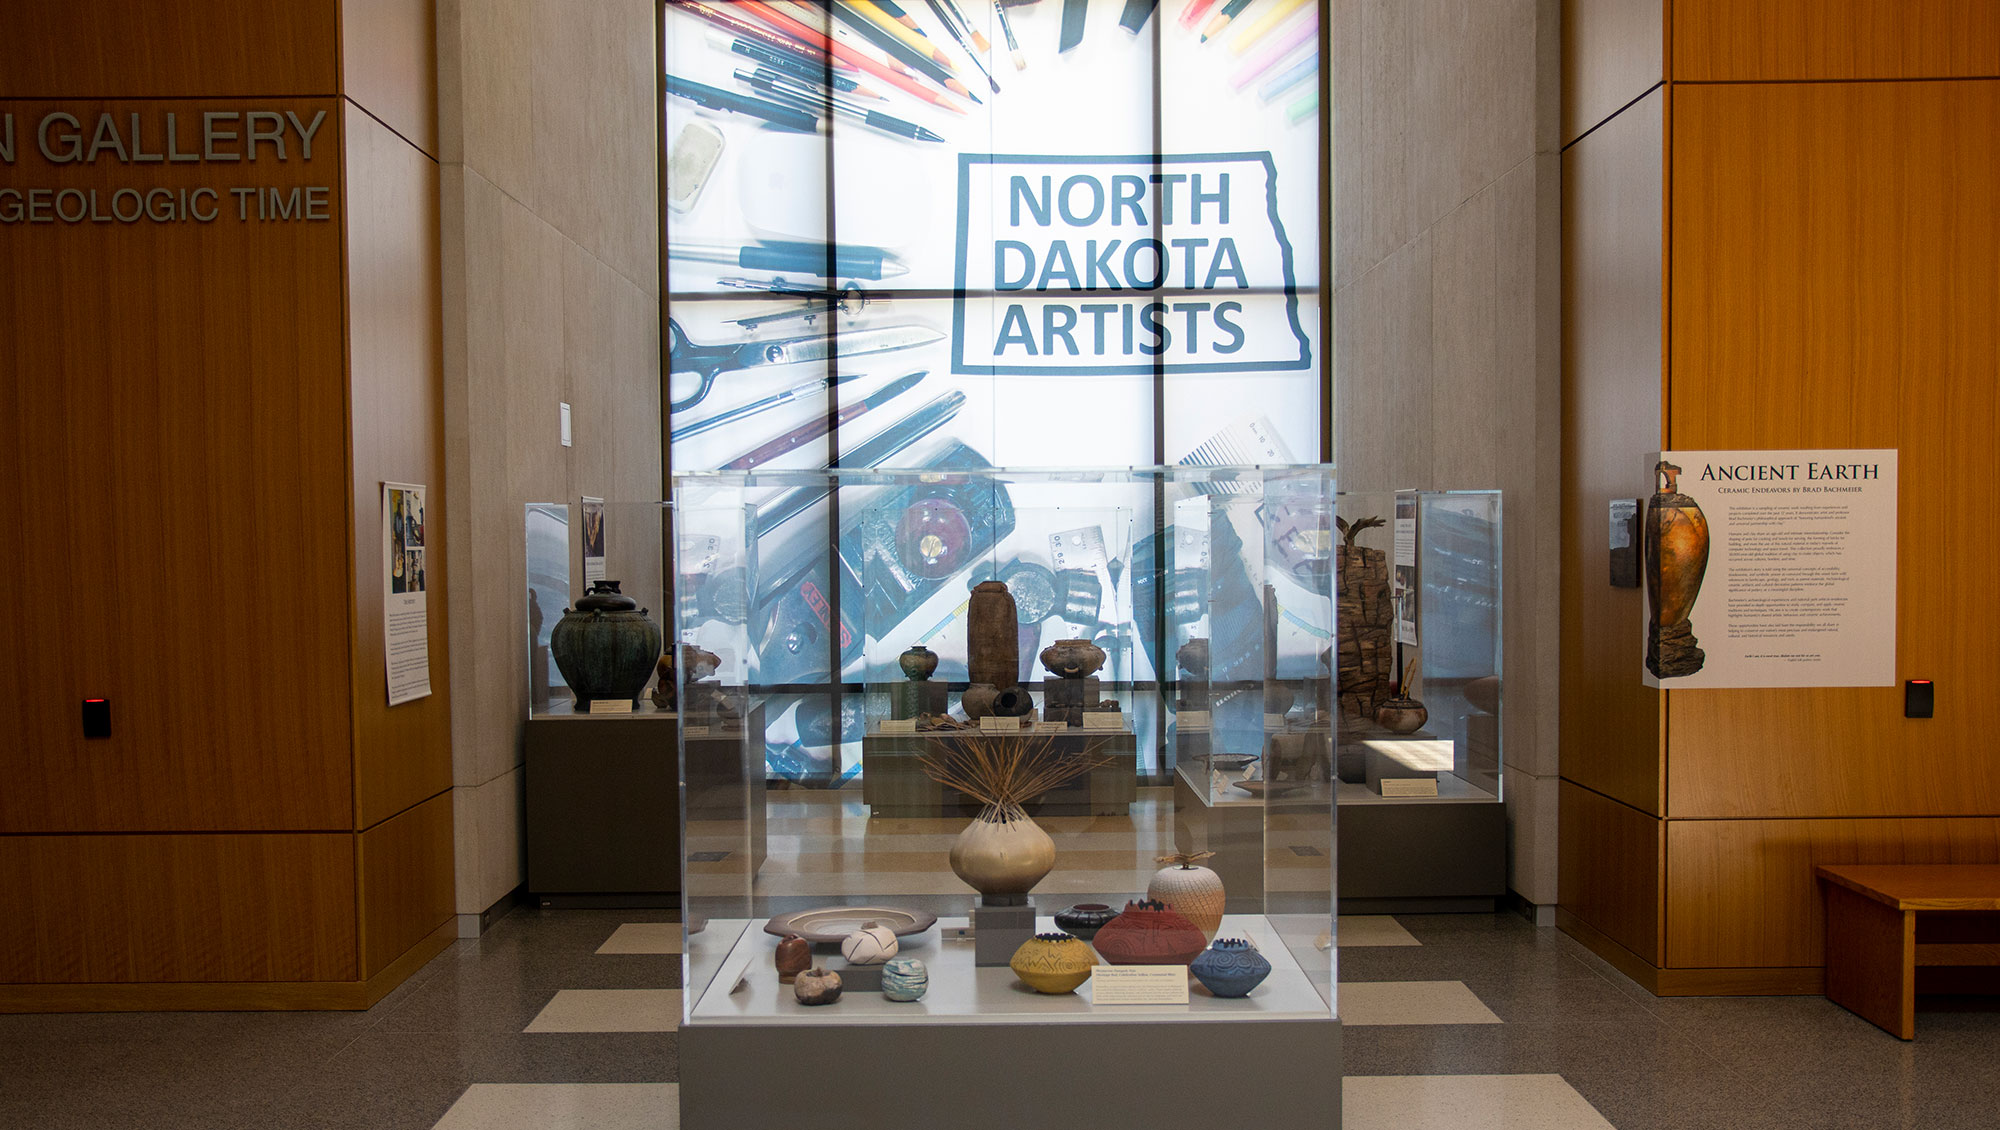 Hallway with display cases containing pottery. In the background is a window with a window cling that reads North Dakota Artists and has art supplies around the text